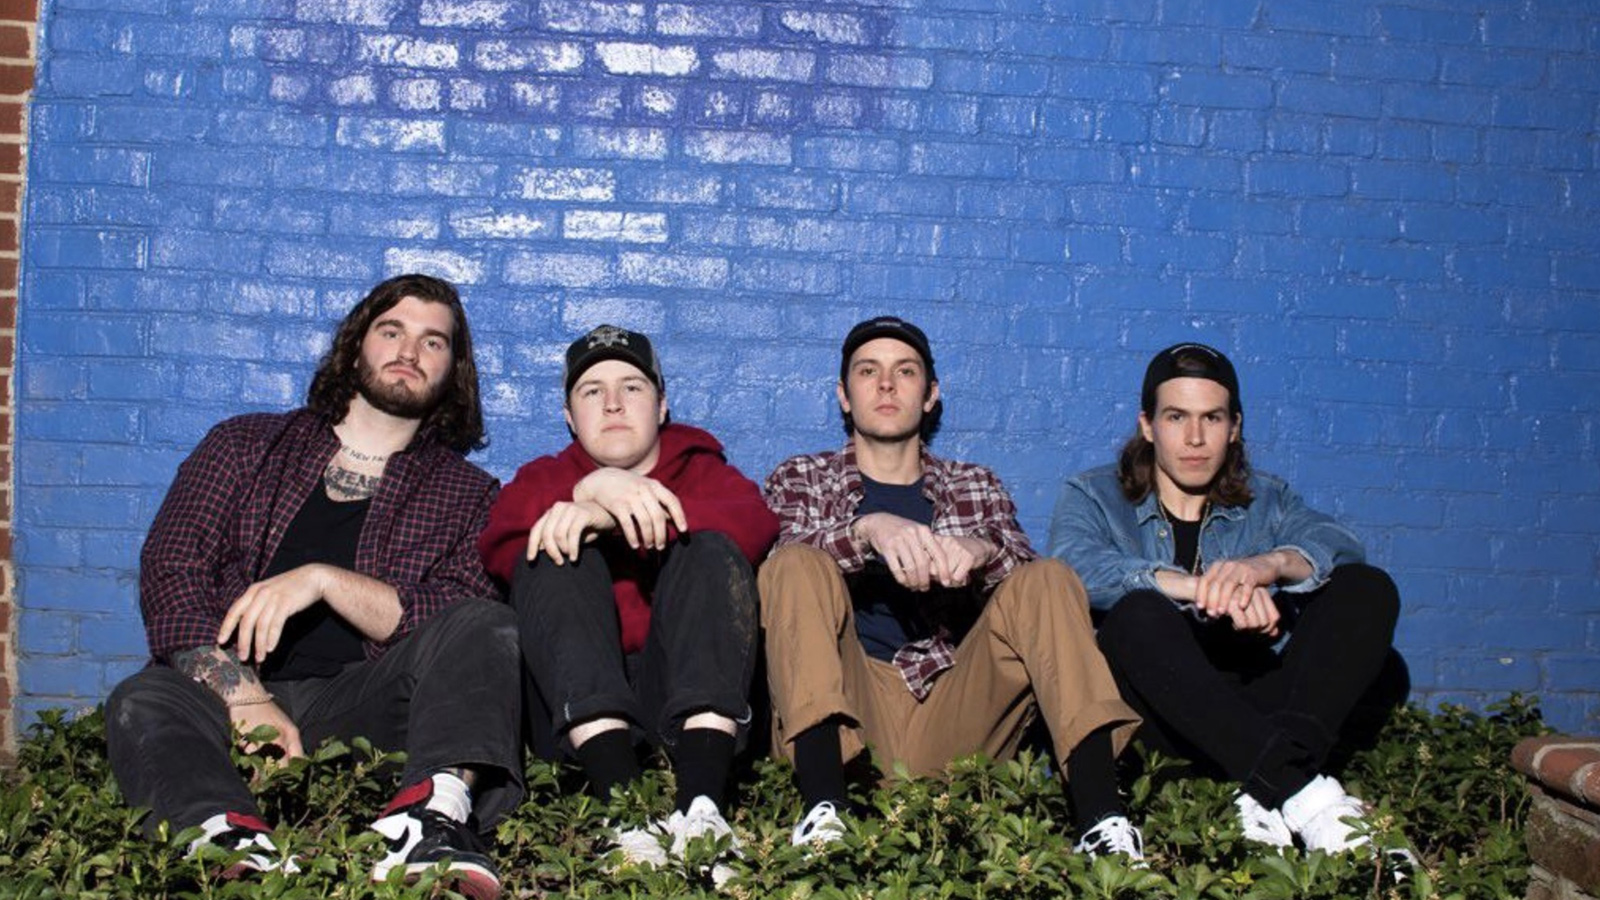 """Hear Rising Metallic Hardcore Band Outsider's Scathing New Song """"Life Runs Out"""""""